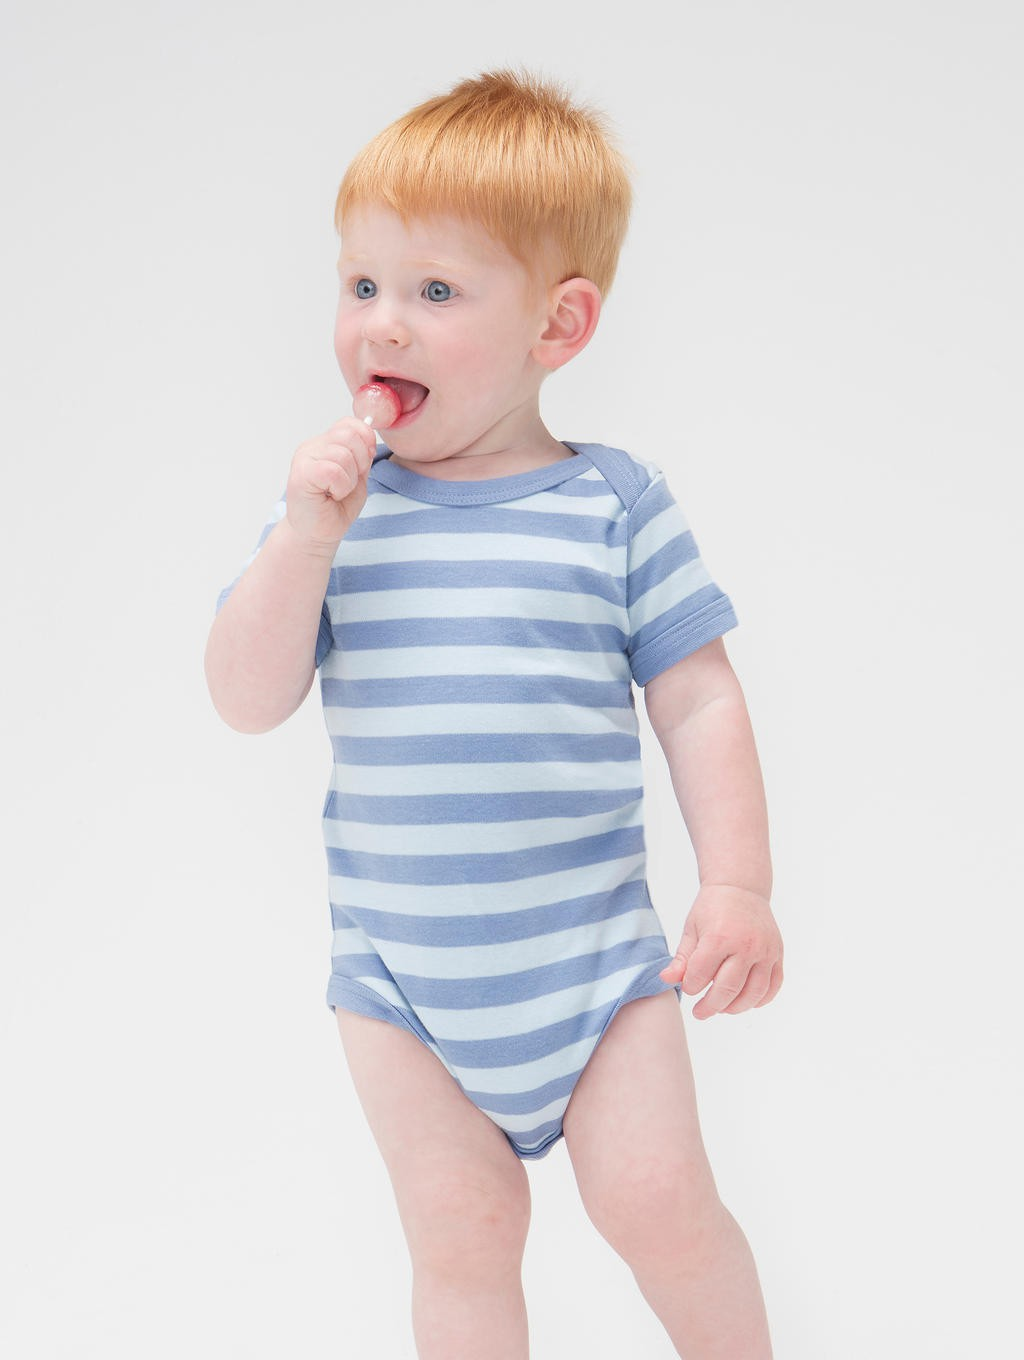 BabyBugz: Baby Striped Short Sleeve Bodysuit BZ10S